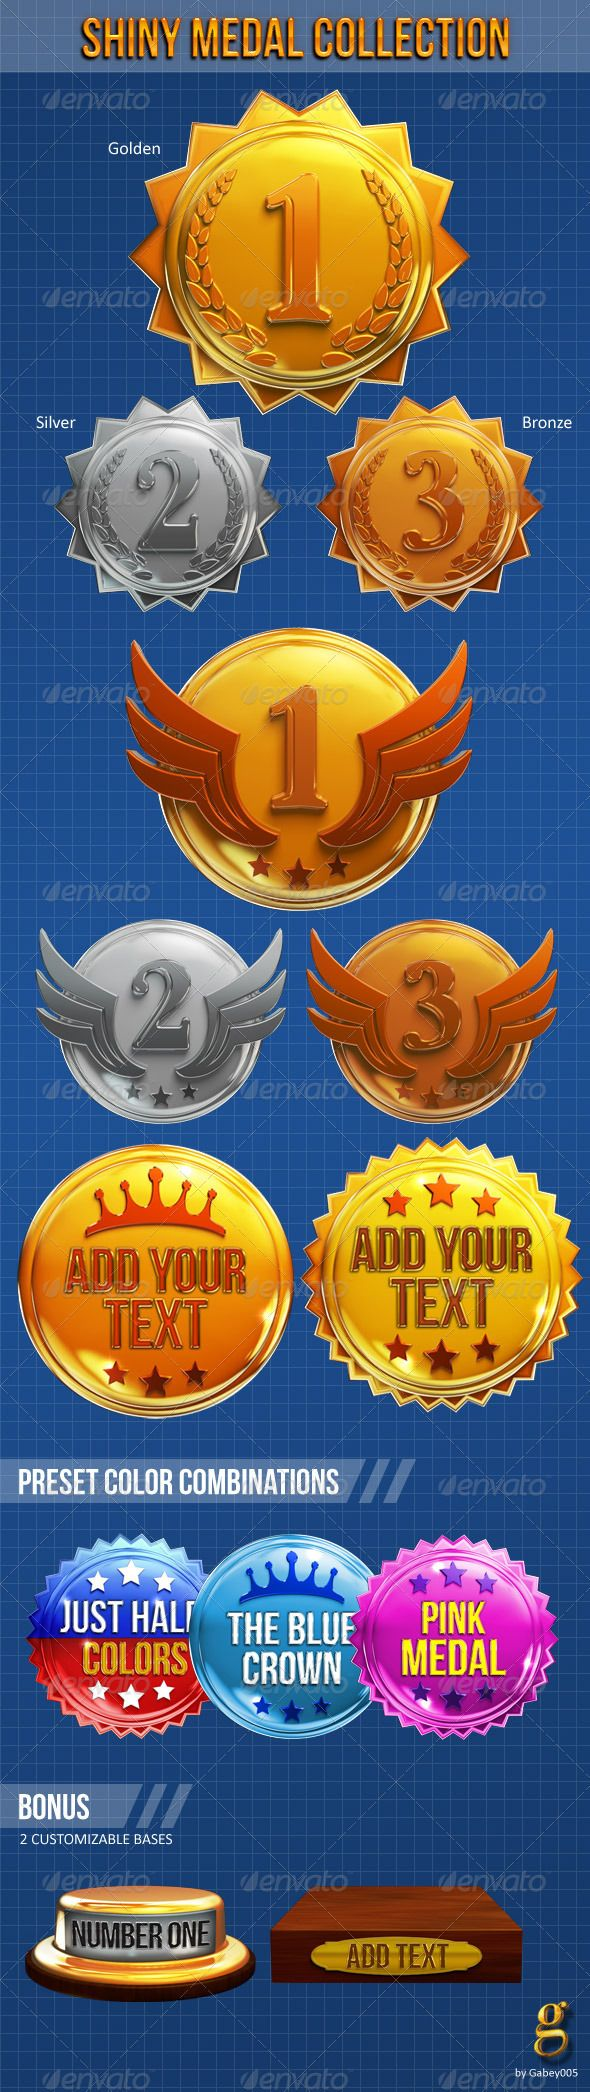 Shiny Medal Collection by Gabey005 Super shiny medal collection in high resolution 3000×3280 px. Includes 6 numbered medals (1st,2nd,3rd) and two with customizable t